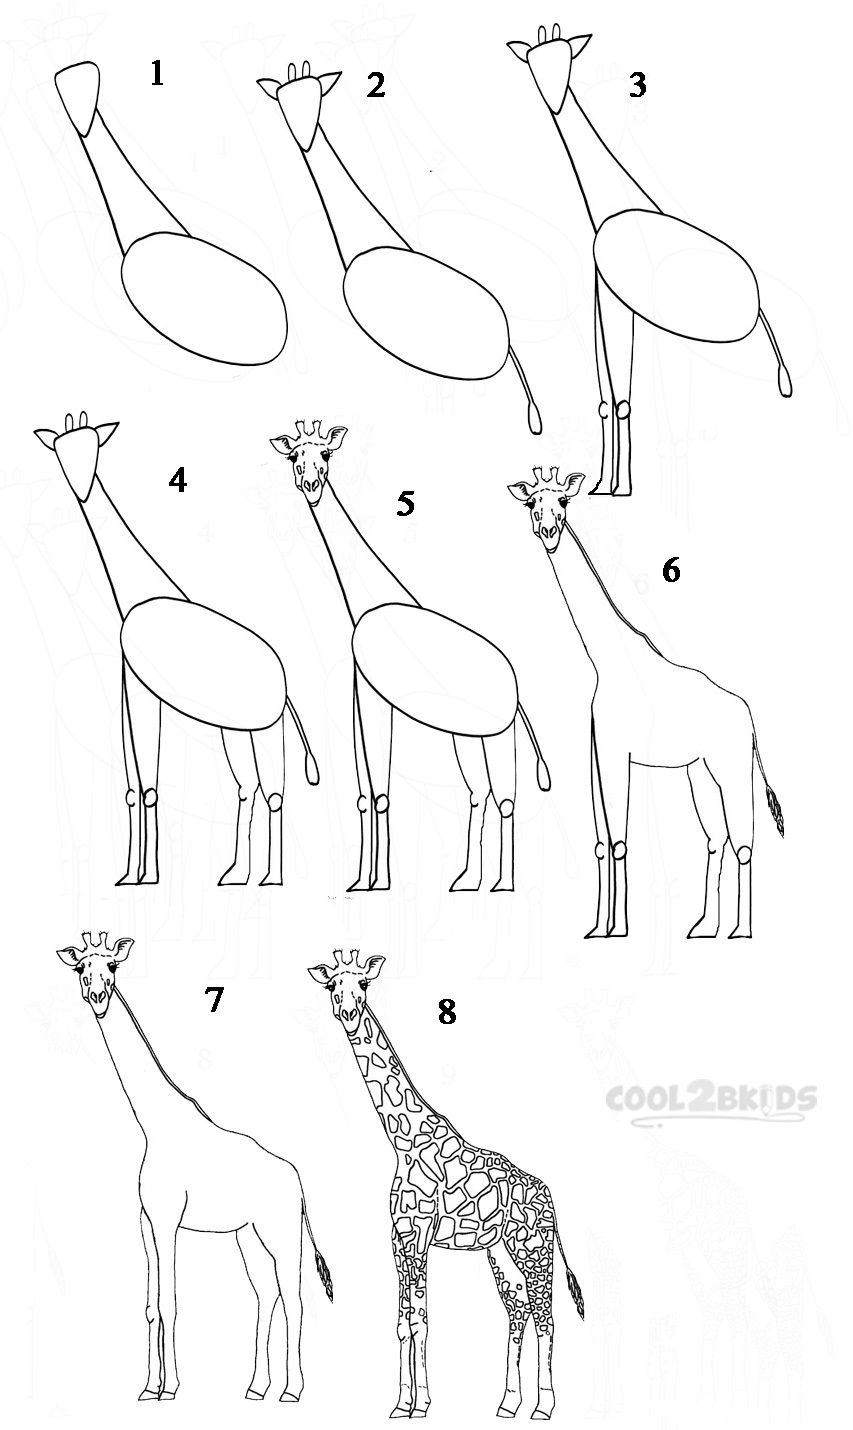 how to draw step by step how to draw a giraffe step by step pictures cool2bkids to step by step draw how